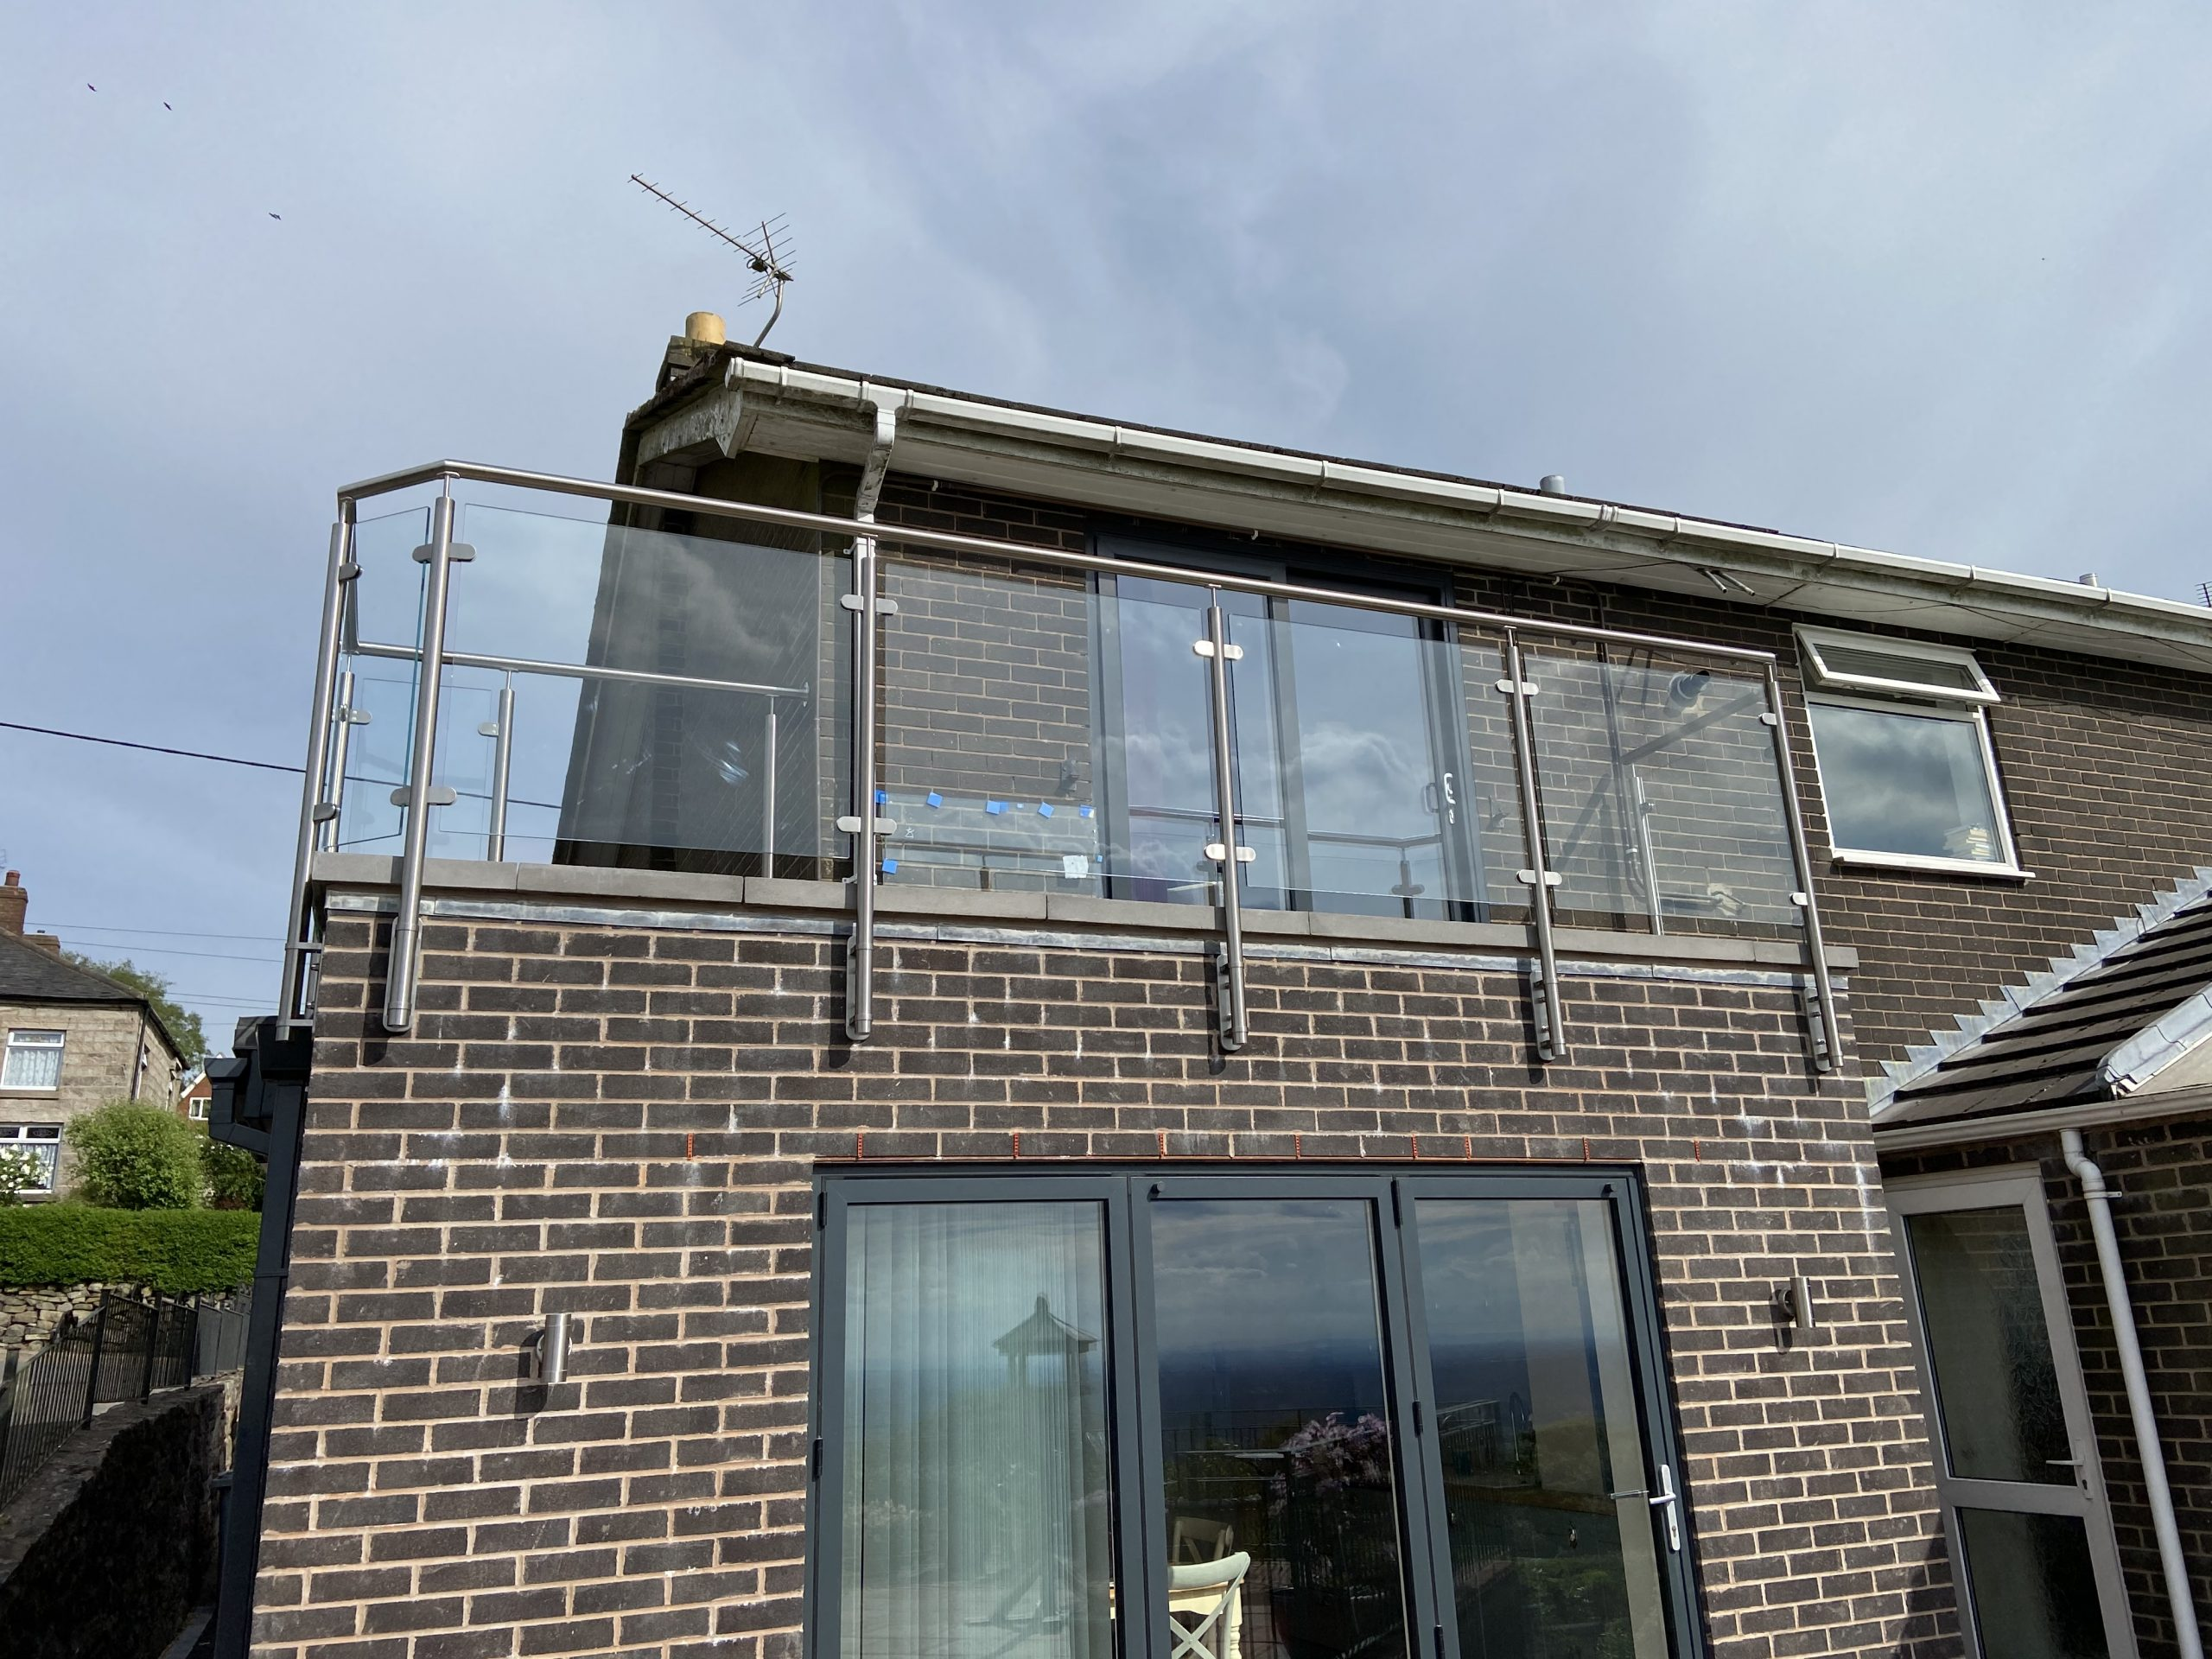 Stainless steel and glass balustrade on roof terrace